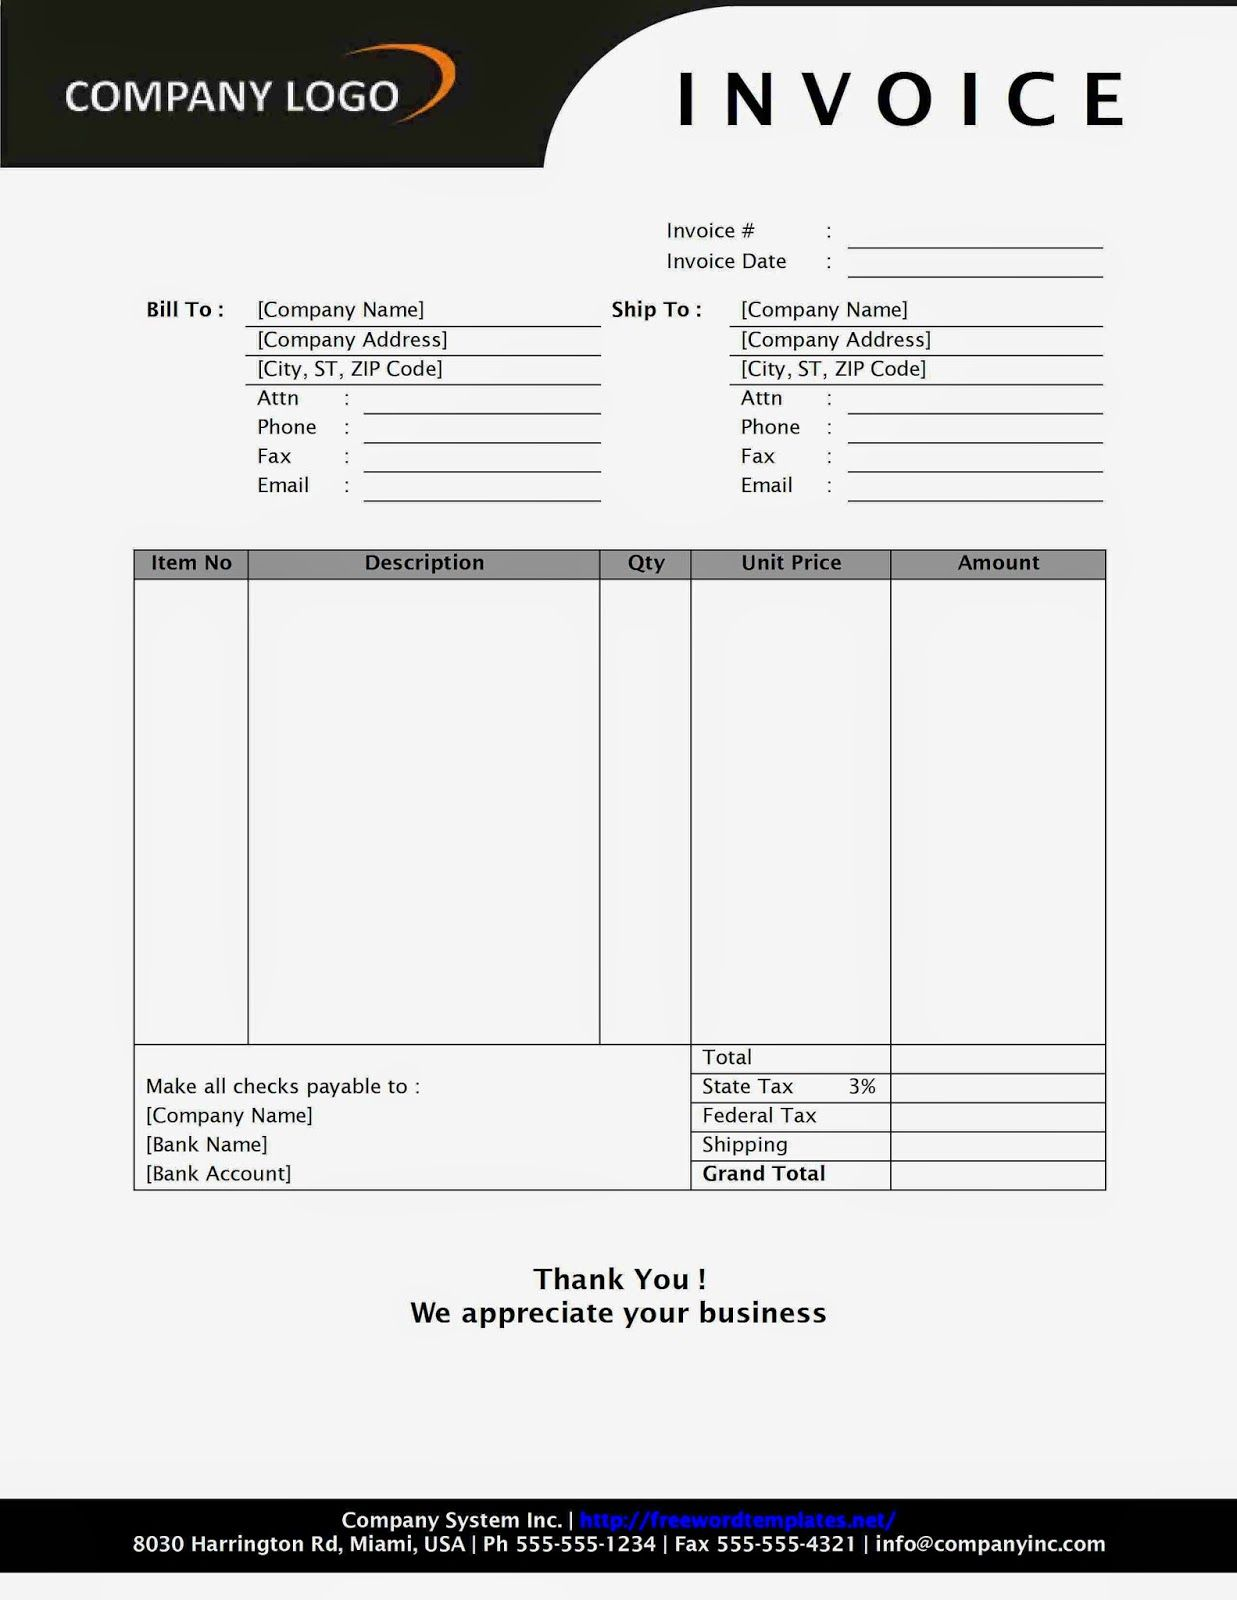 Simple Sales Invoice SD Style Books Worth Reading Pinterest - Free invoice template : invoice example word